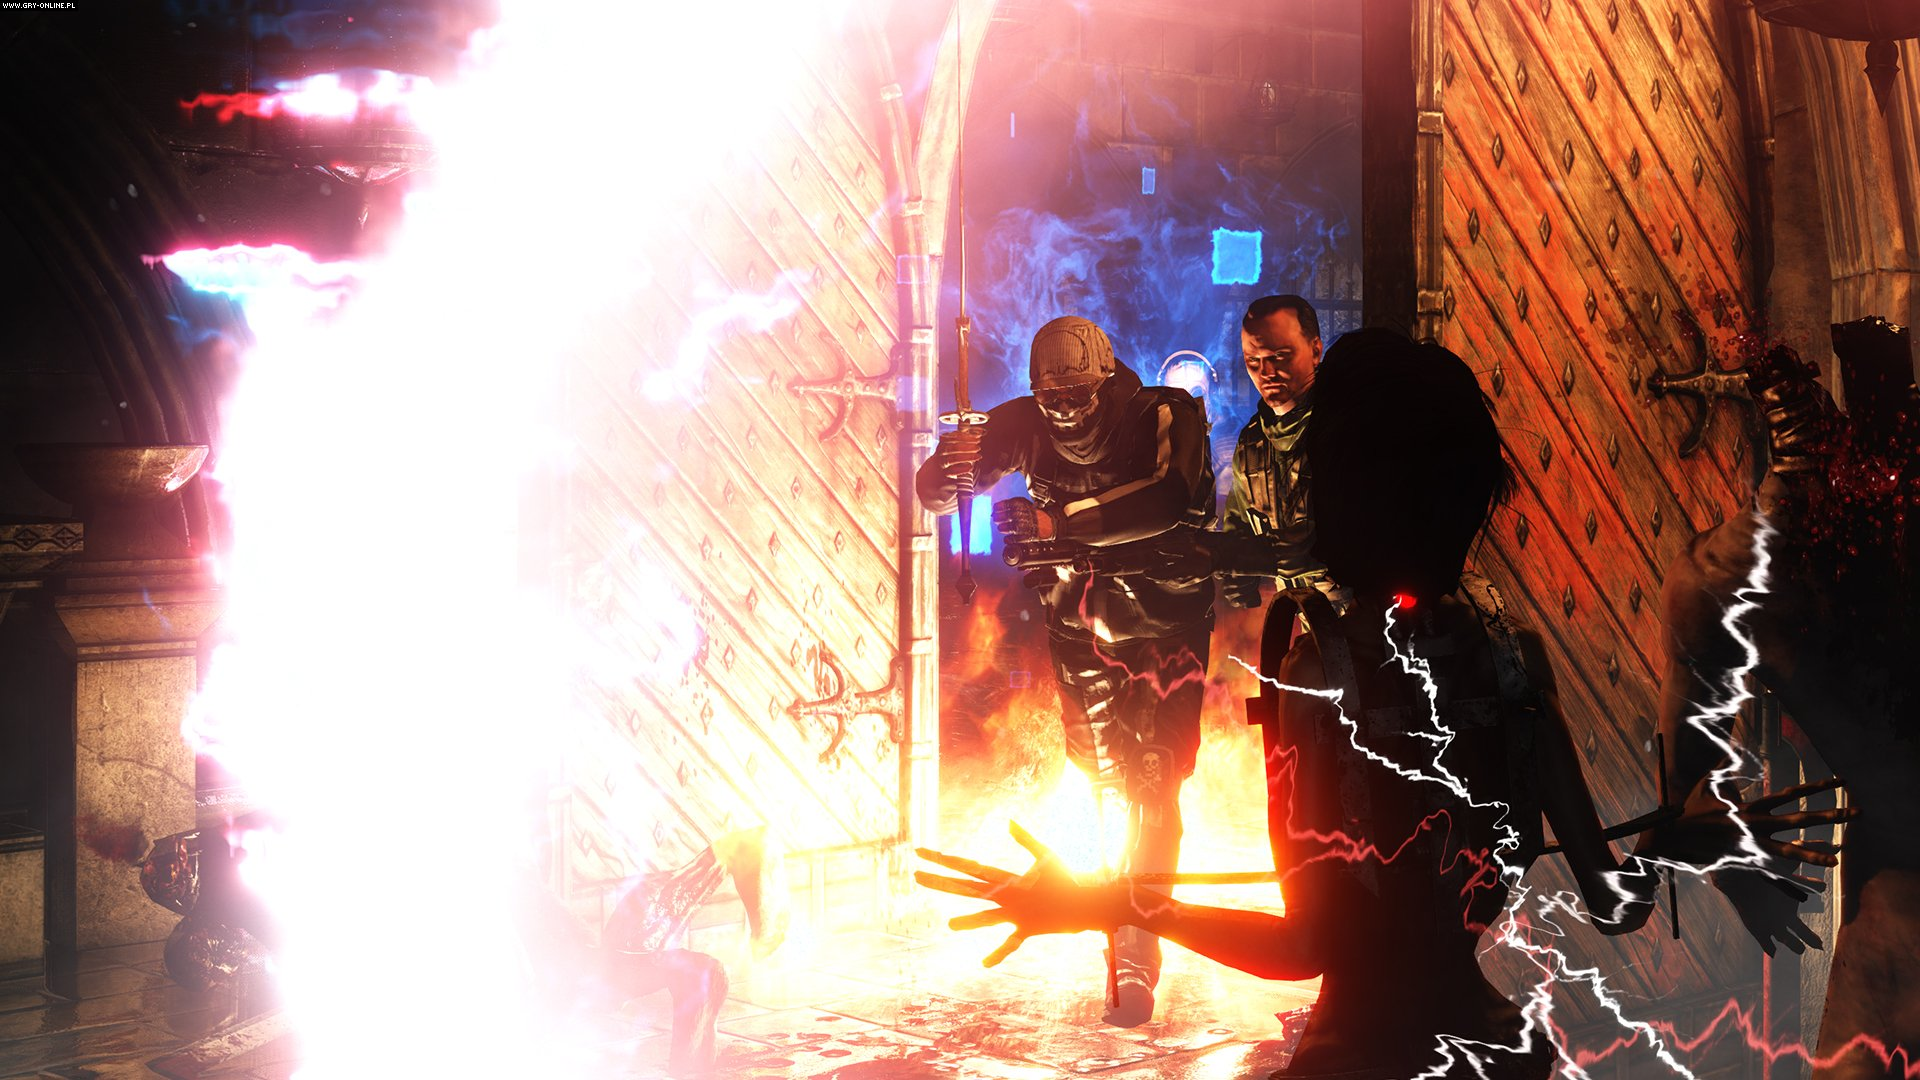 Killing Floor 2 PC, PS4 Gry Screen 108/174, Tripwire Interactive